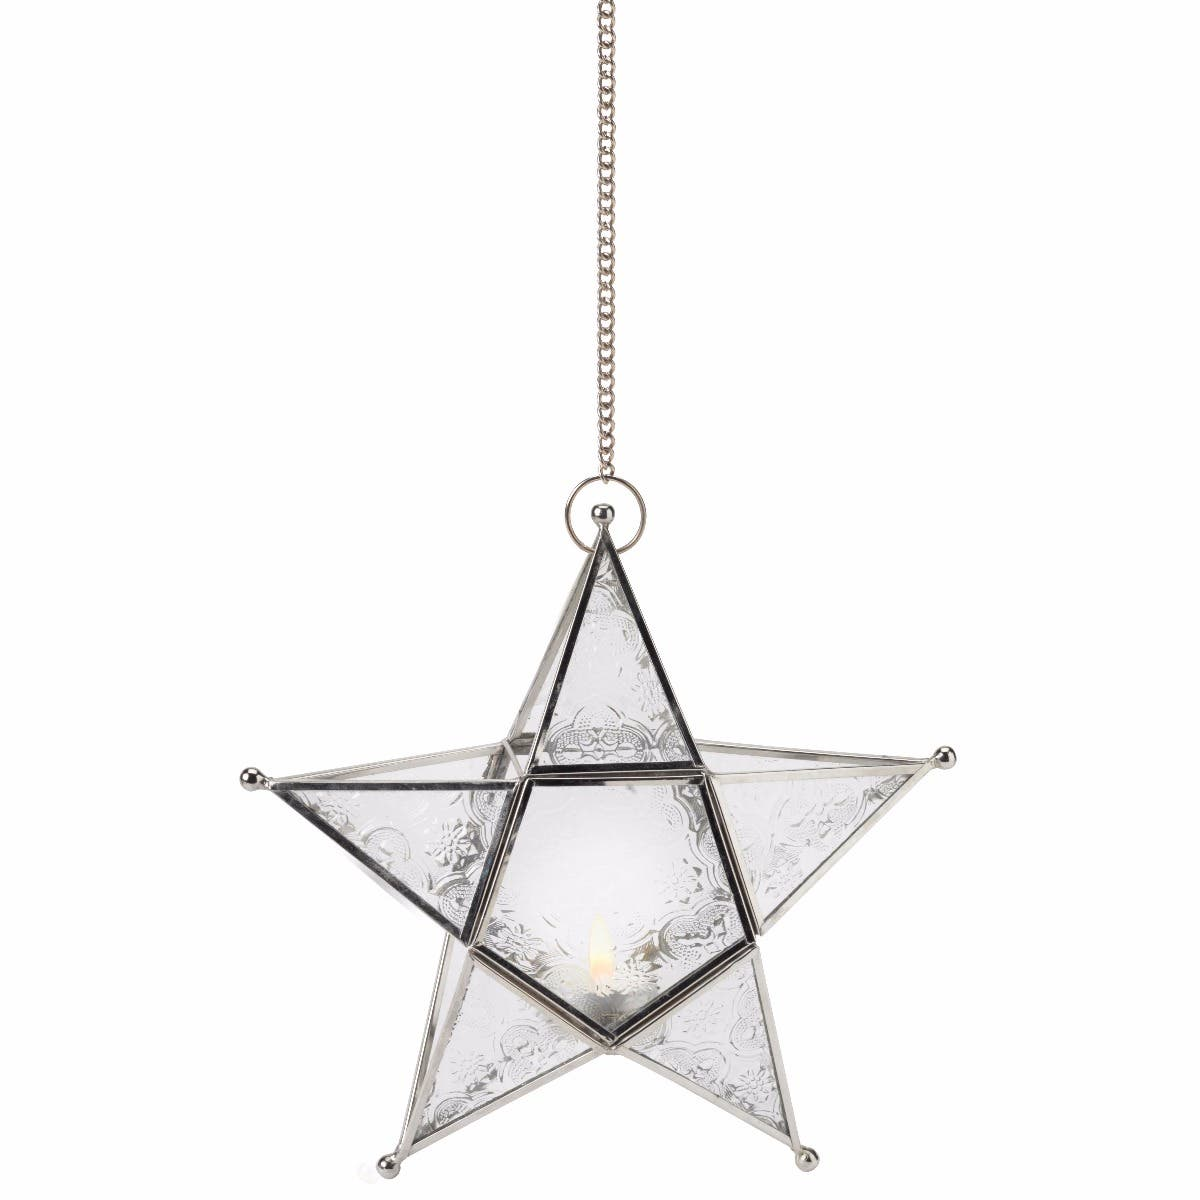 Hanging Star Tealight Holder - Clear